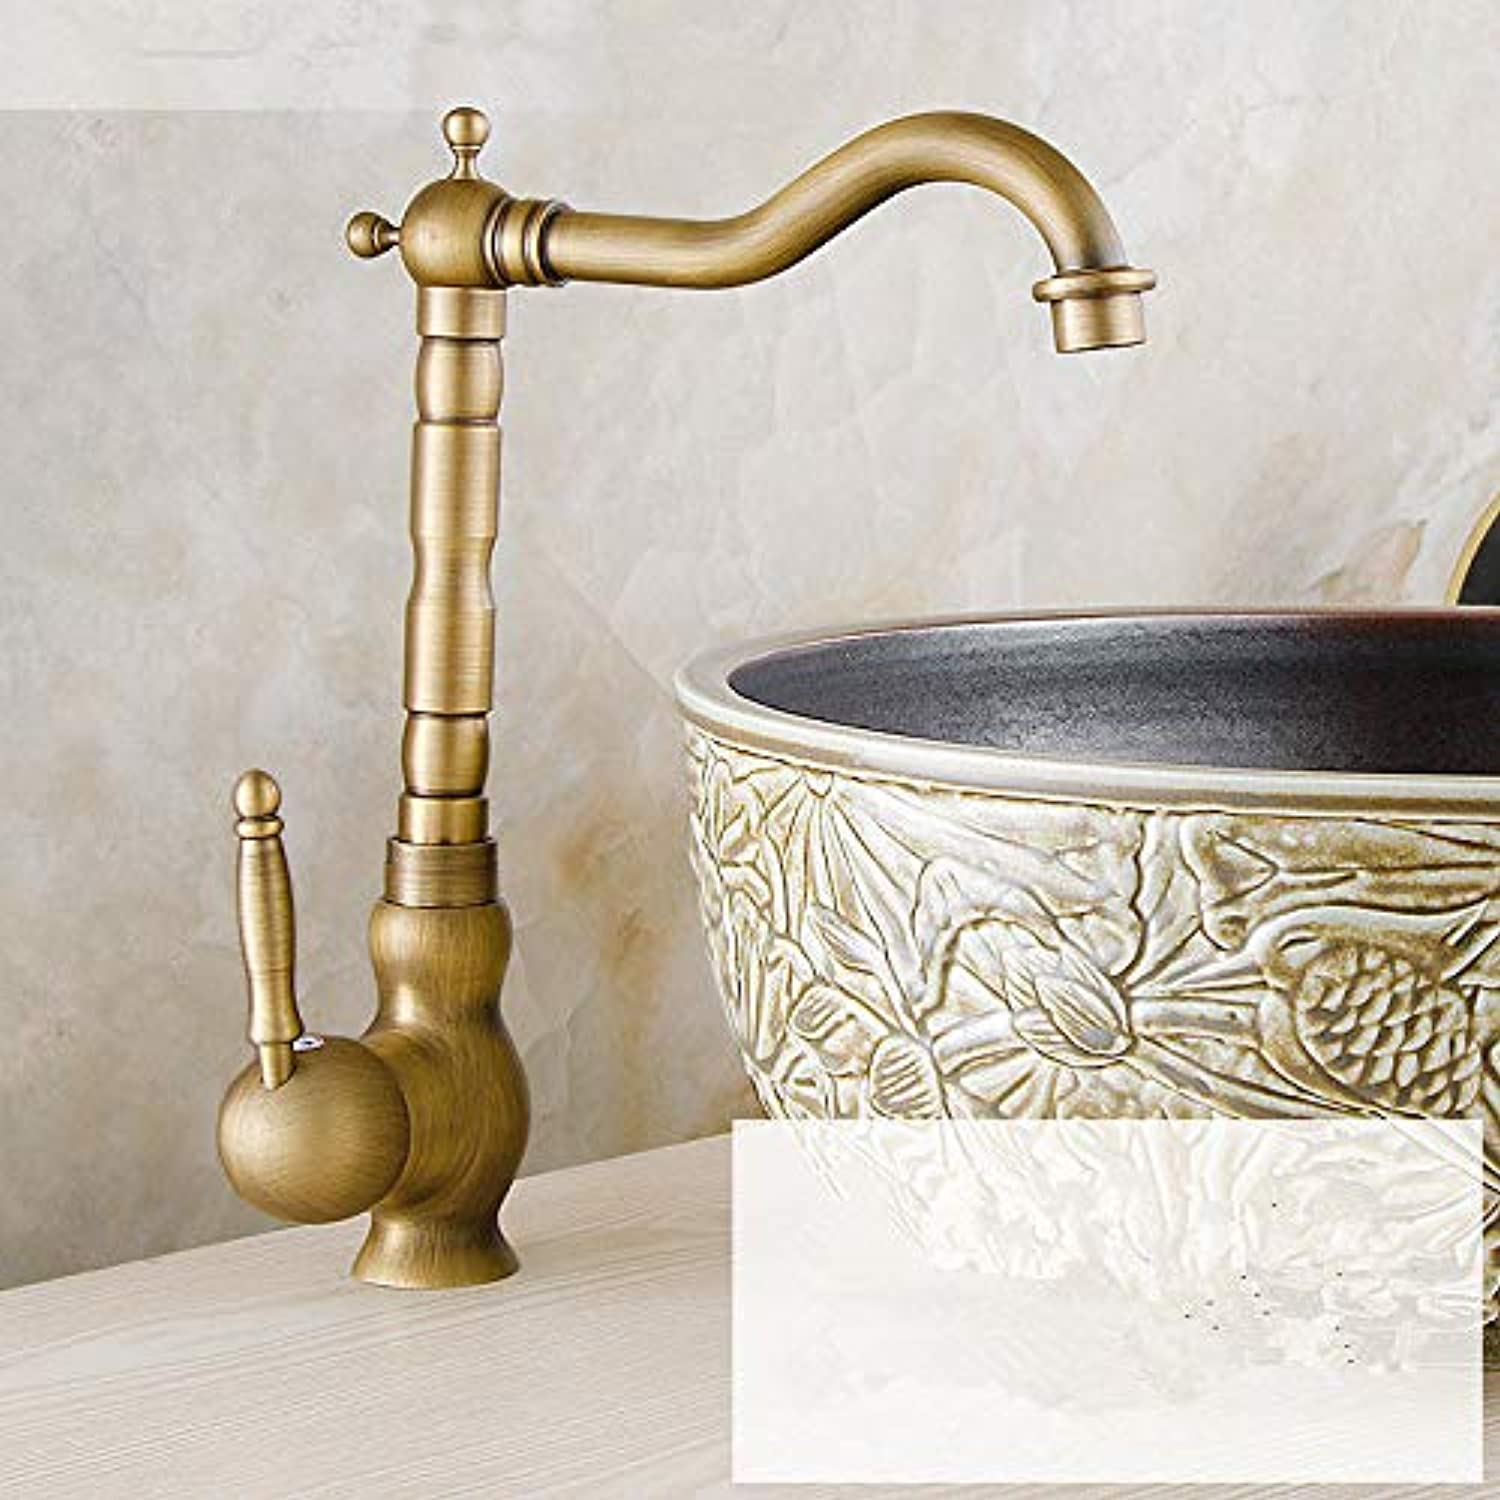 XPYFaucet Faucet Tap Taps Antique copper basin European retro redating heightening